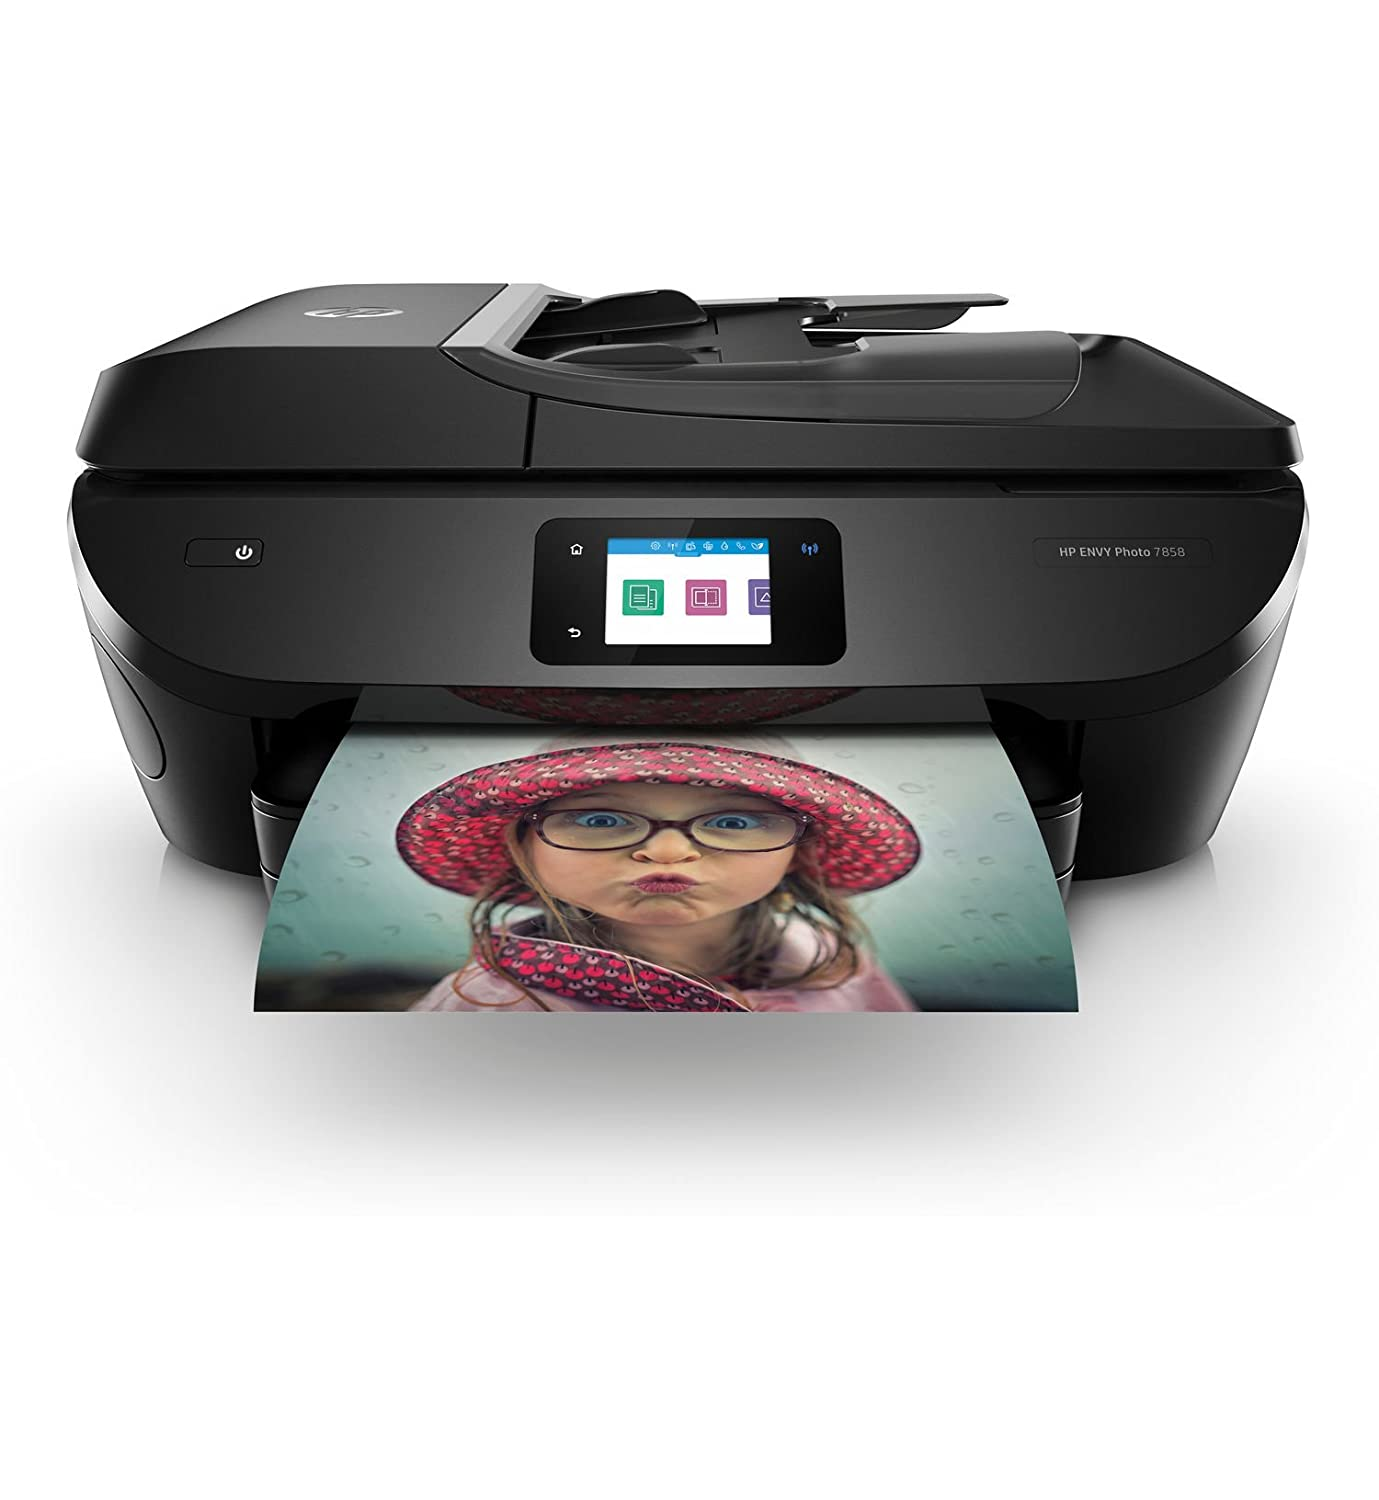 Amazon.com: HP ENVY Photo 7858 All-in-One Inkjet Photo Printer with Mobile  Printing K7S08A (Certified Refurbished): Office Products